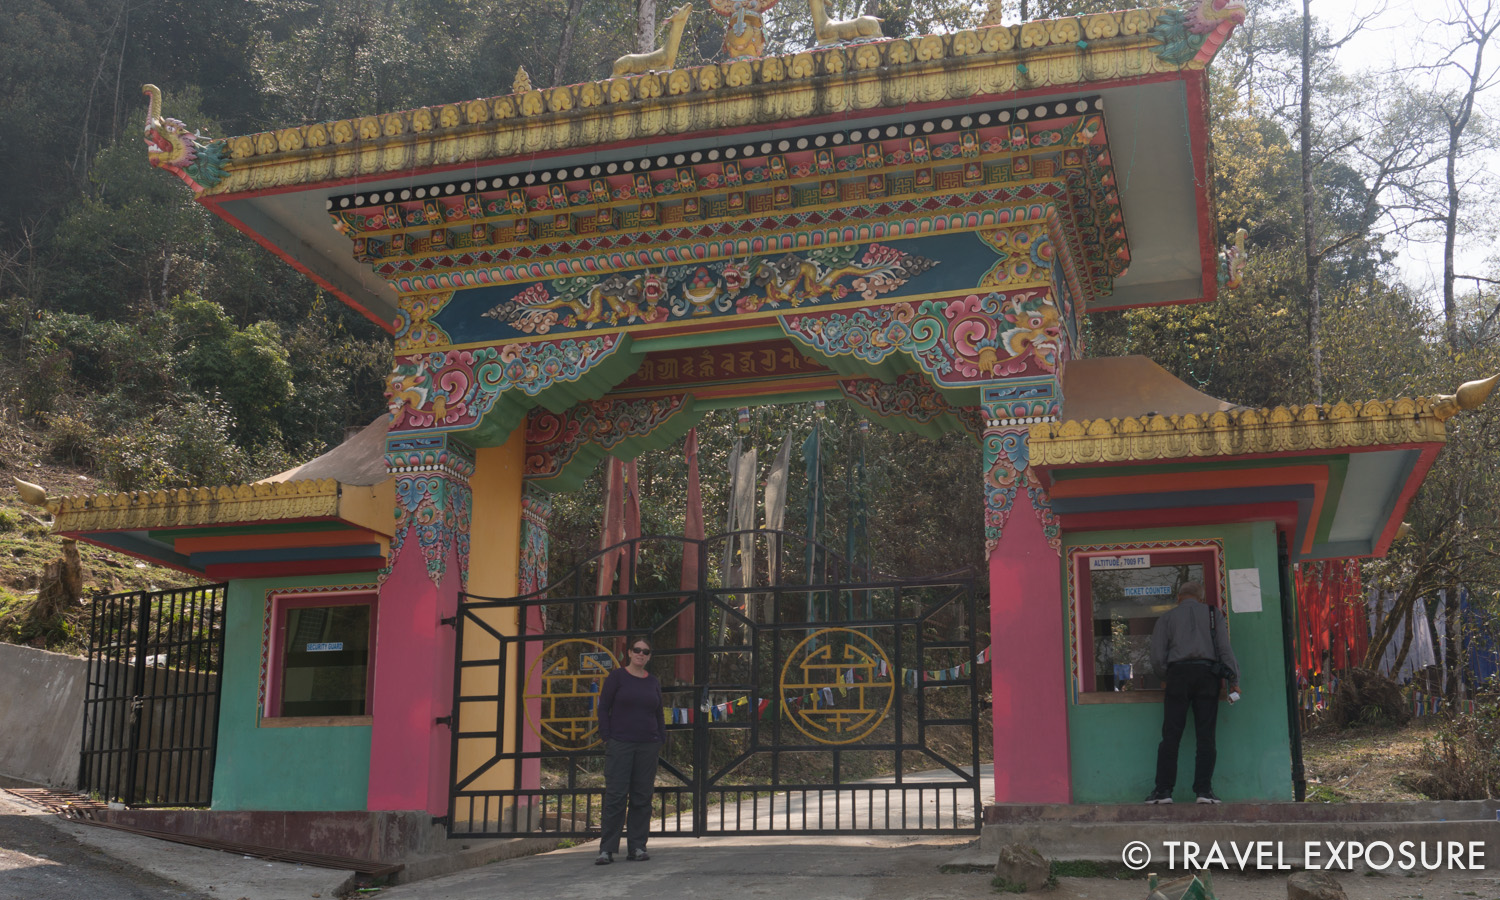 Entrance to the Samdruptse Temple in Namchi, Sikkim